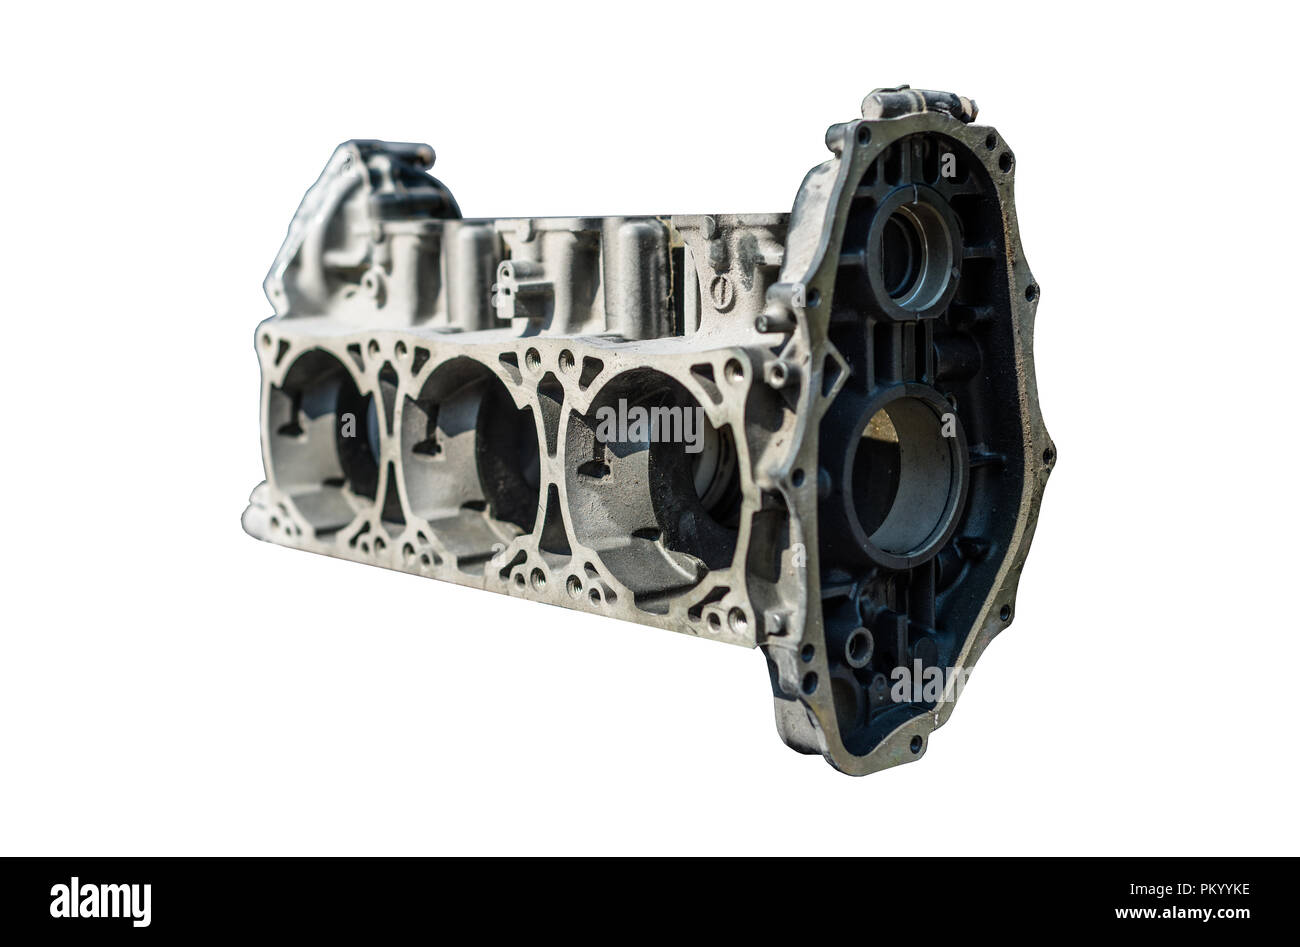 A disassembled of a three-cylinder engine block isolated on a white background with a clipping path. - Stock Image